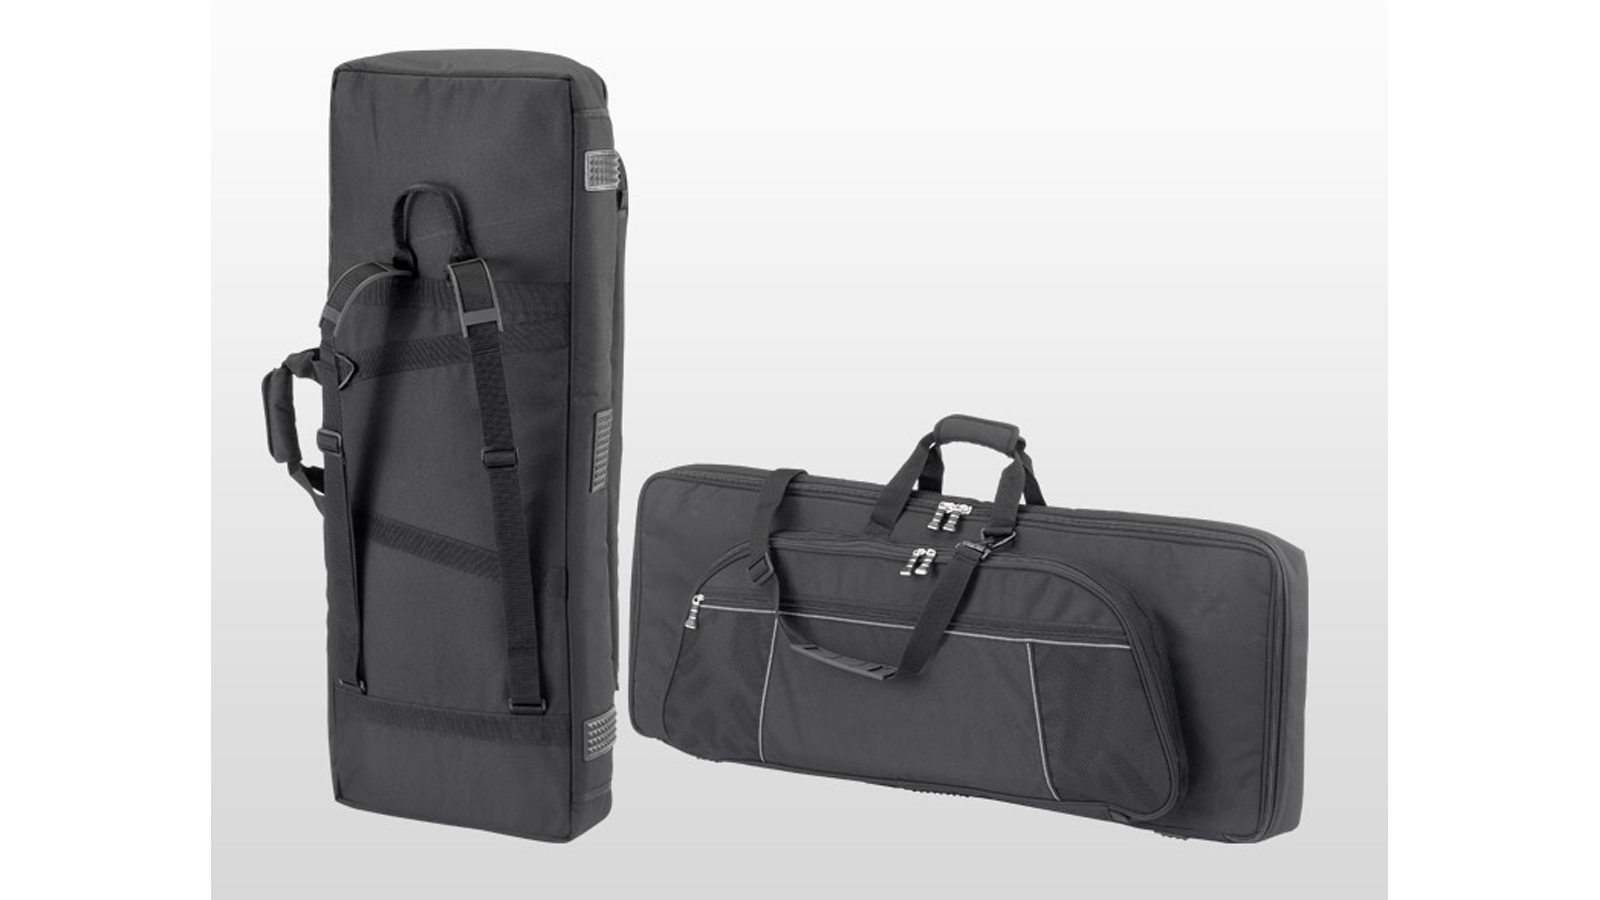 Soundwear Stagepiano Bag Protector 133 x 33 x 16 cm